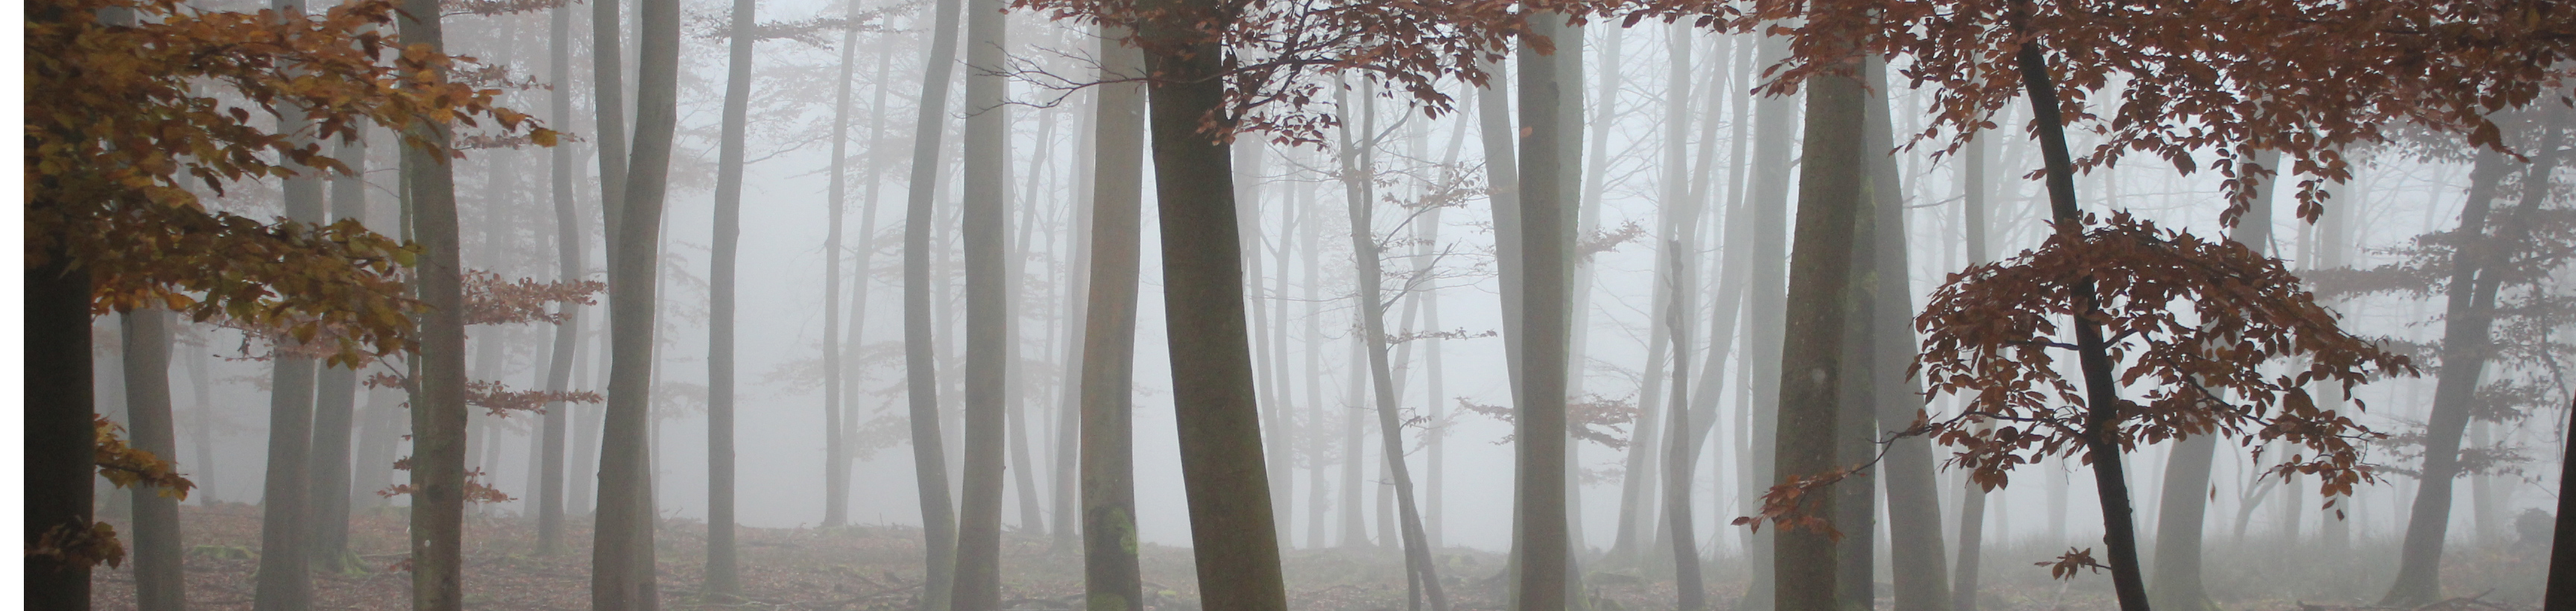 New-Forest_1